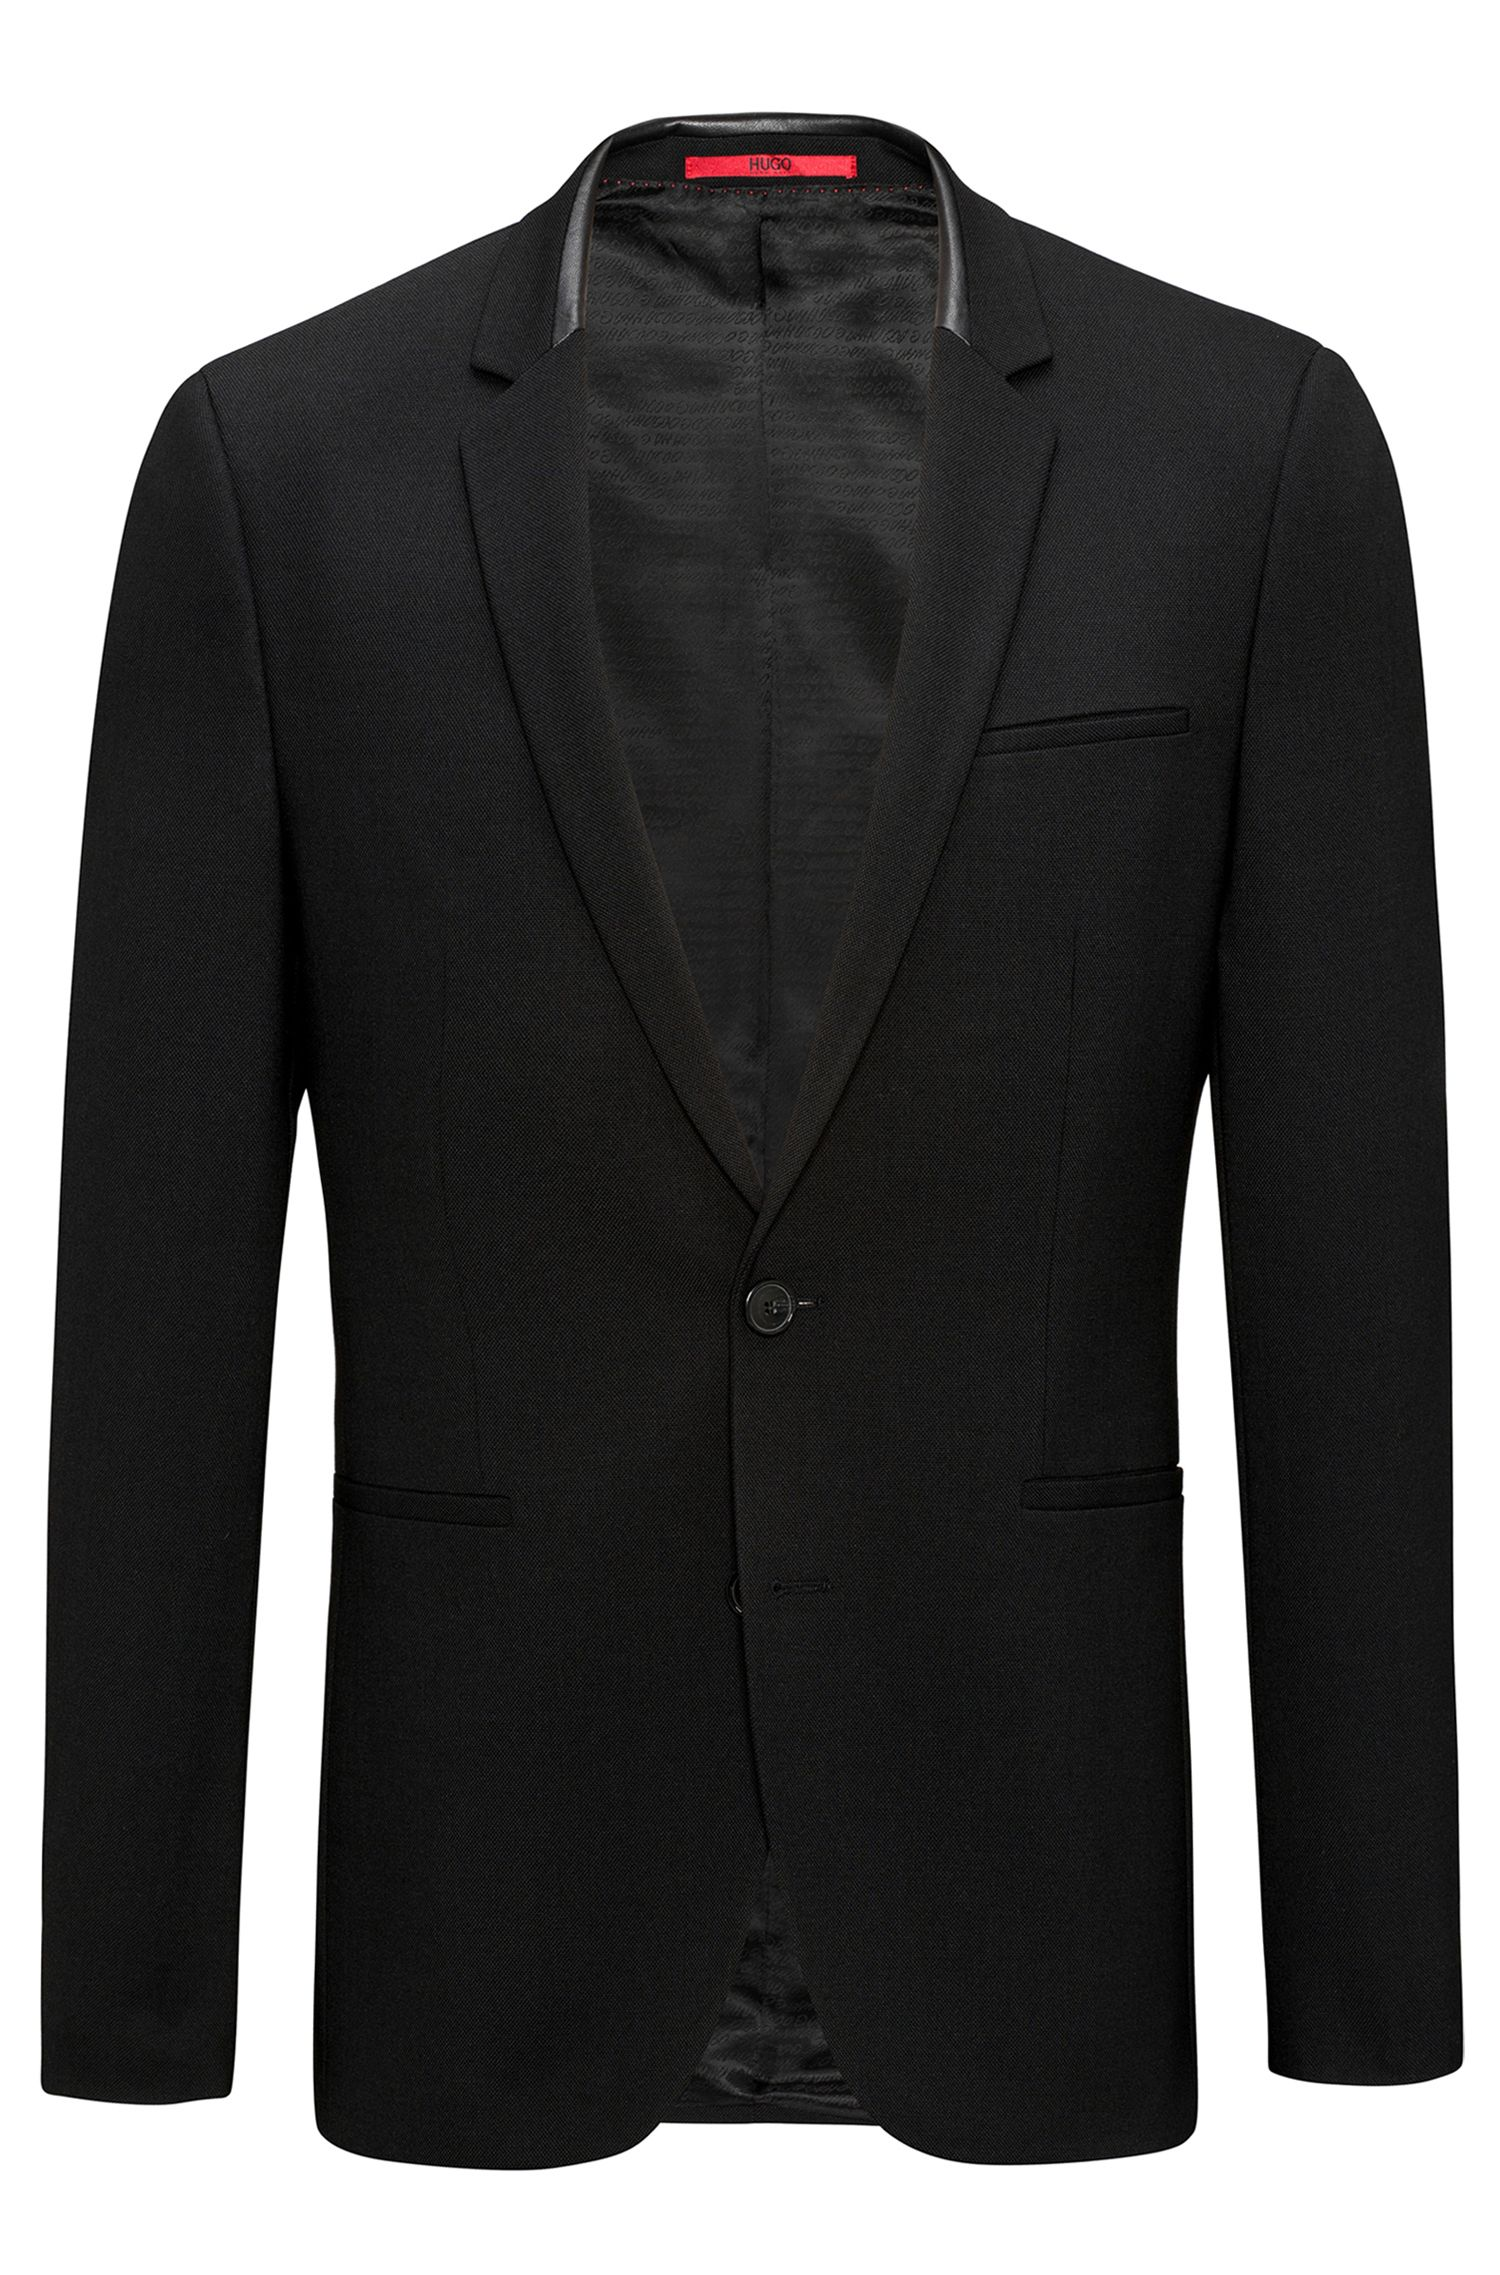 Extra-slim-fit jacket in comfort-stretch fabric